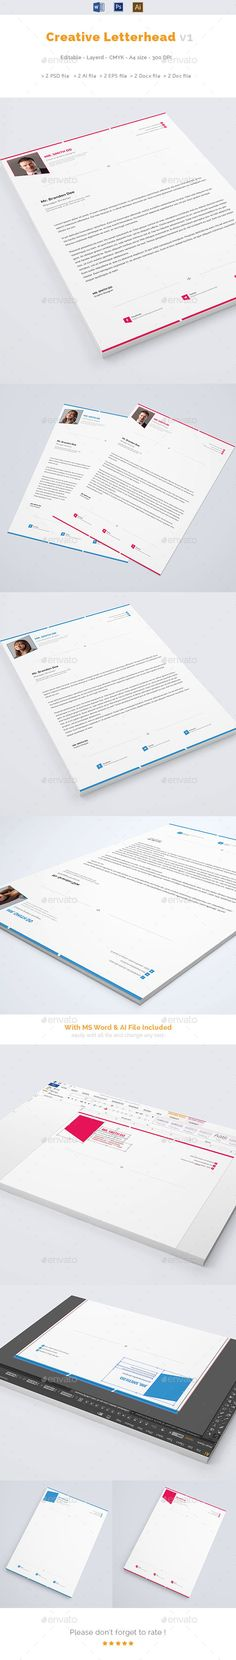 Buy Creative Letterhead by Kitket on GraphicRiver. This layout is suitable for any project purpose. Very easy to use and customize. Safety Pictures, Letterhead Template, Printed Materials, Different Styles, Resume, Layout, Templates, Lettering, Creative